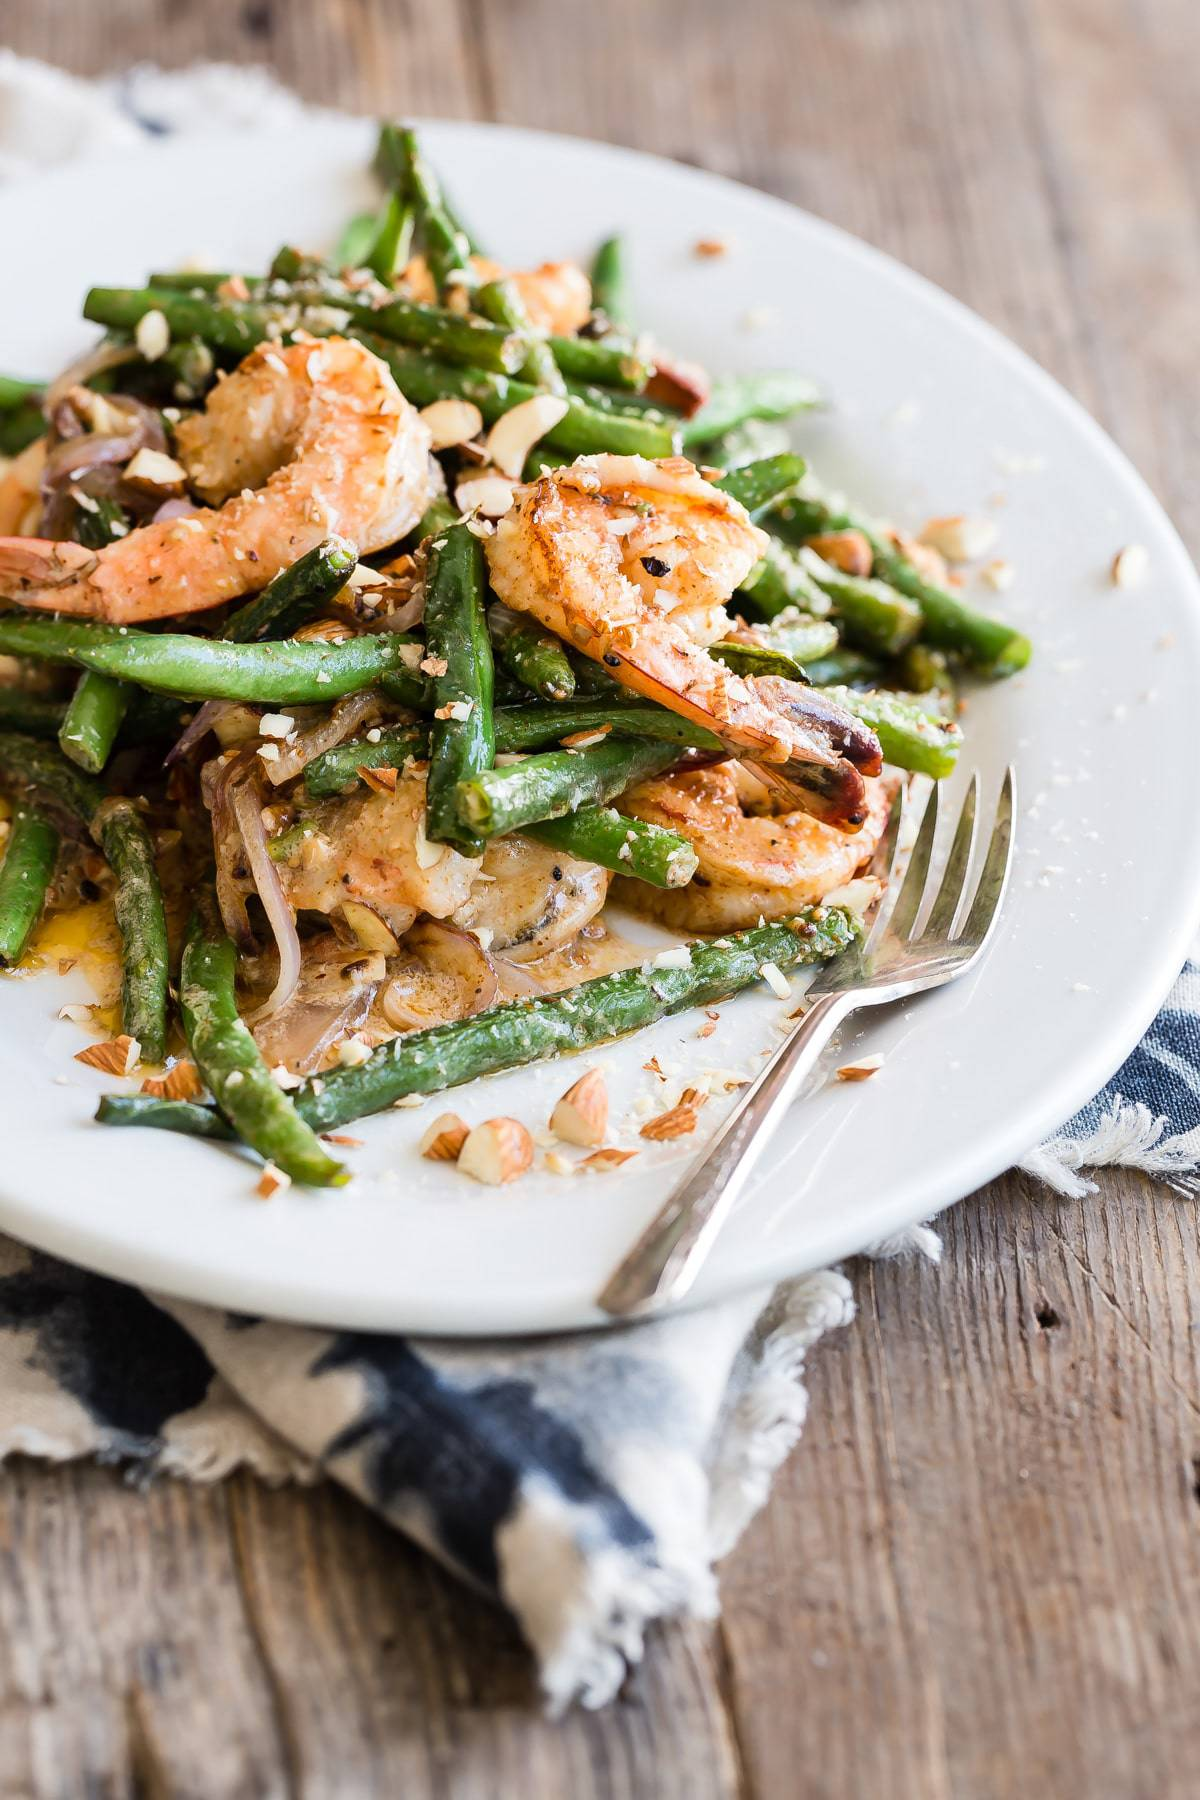 Spicy shrimp with green beans